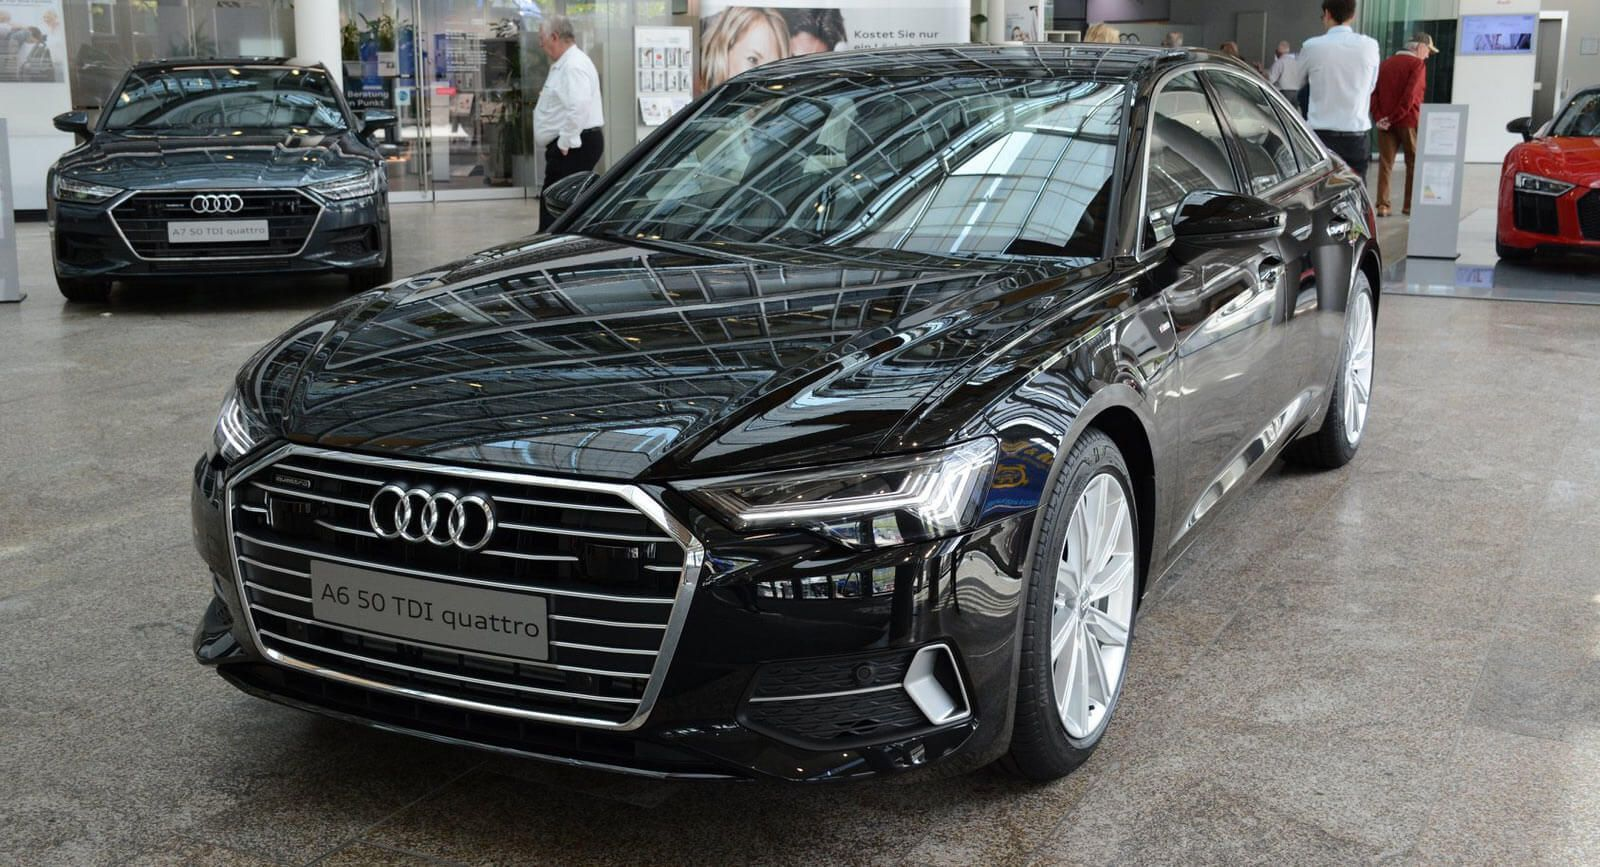 2019 Audi A6 Shows Up At The Forum Wearing Mythos Black Metallic Carscoops Audi A6 Black Audi Audi